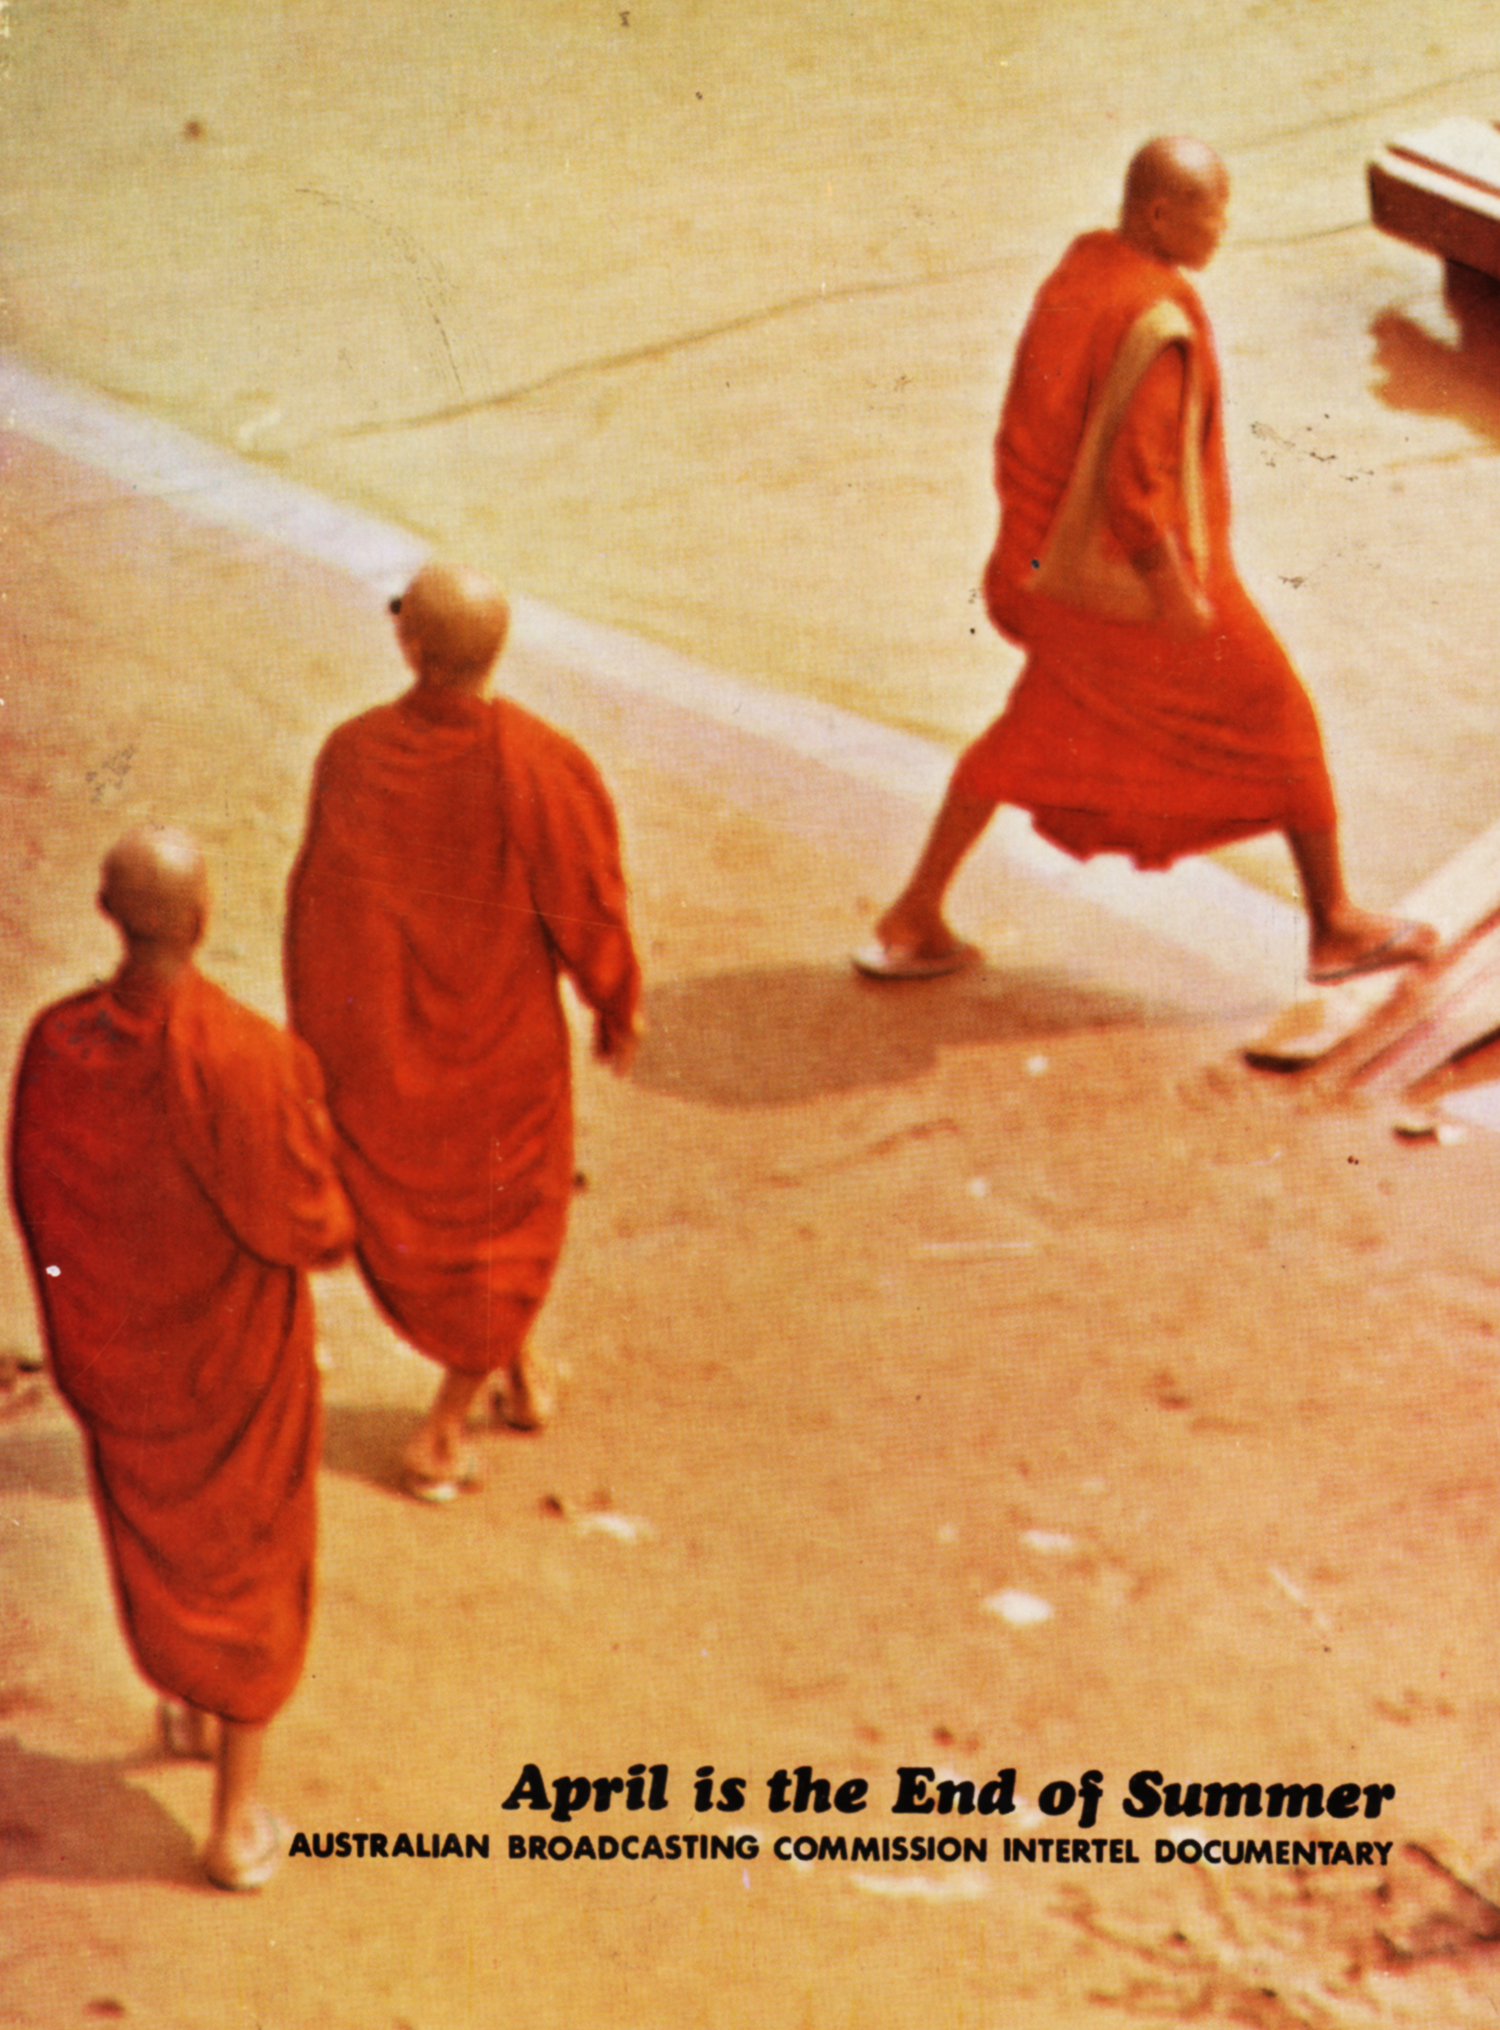 Three monks walk across a road